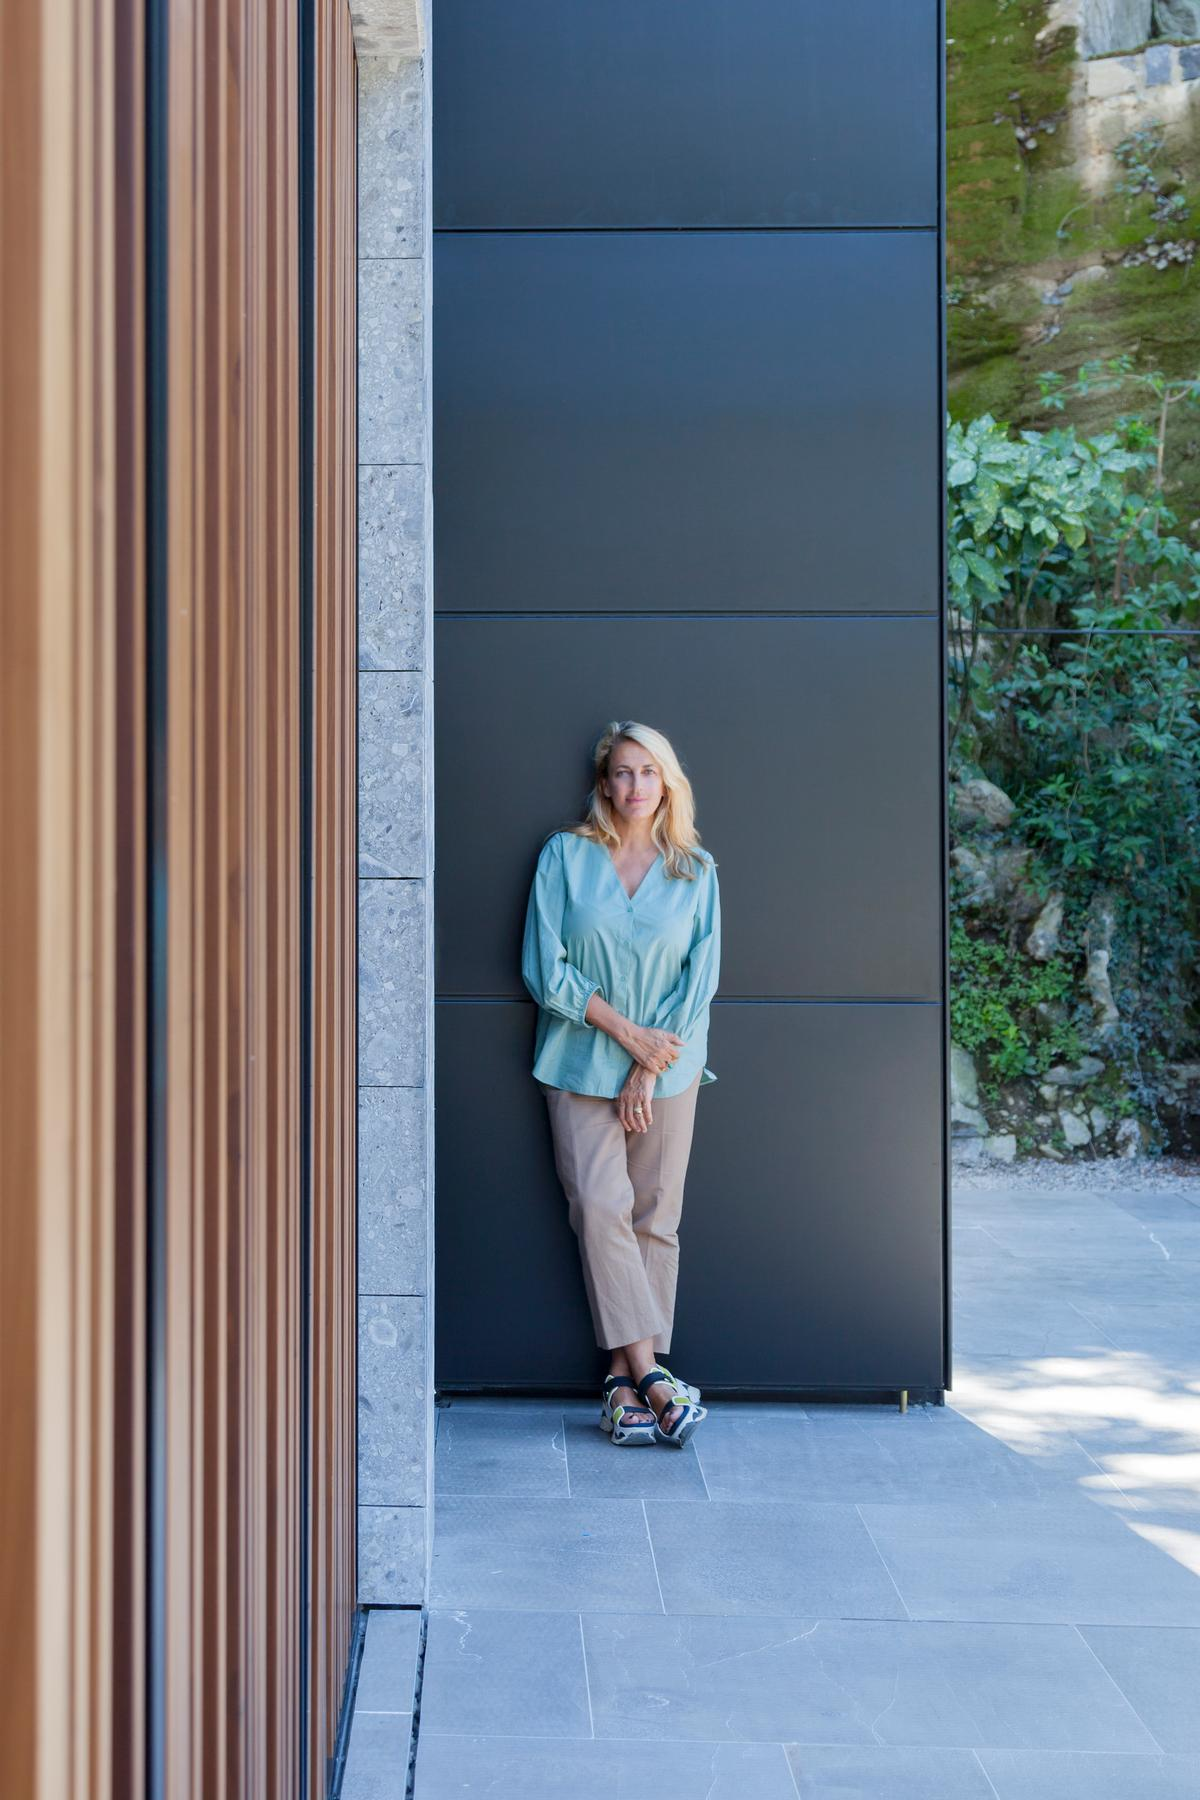 """Urquiola and her practice, Studio Urquiola, were tasked by Sereno with creating """"a contemporary hotel with understated décor / Patricia Parinejad"""